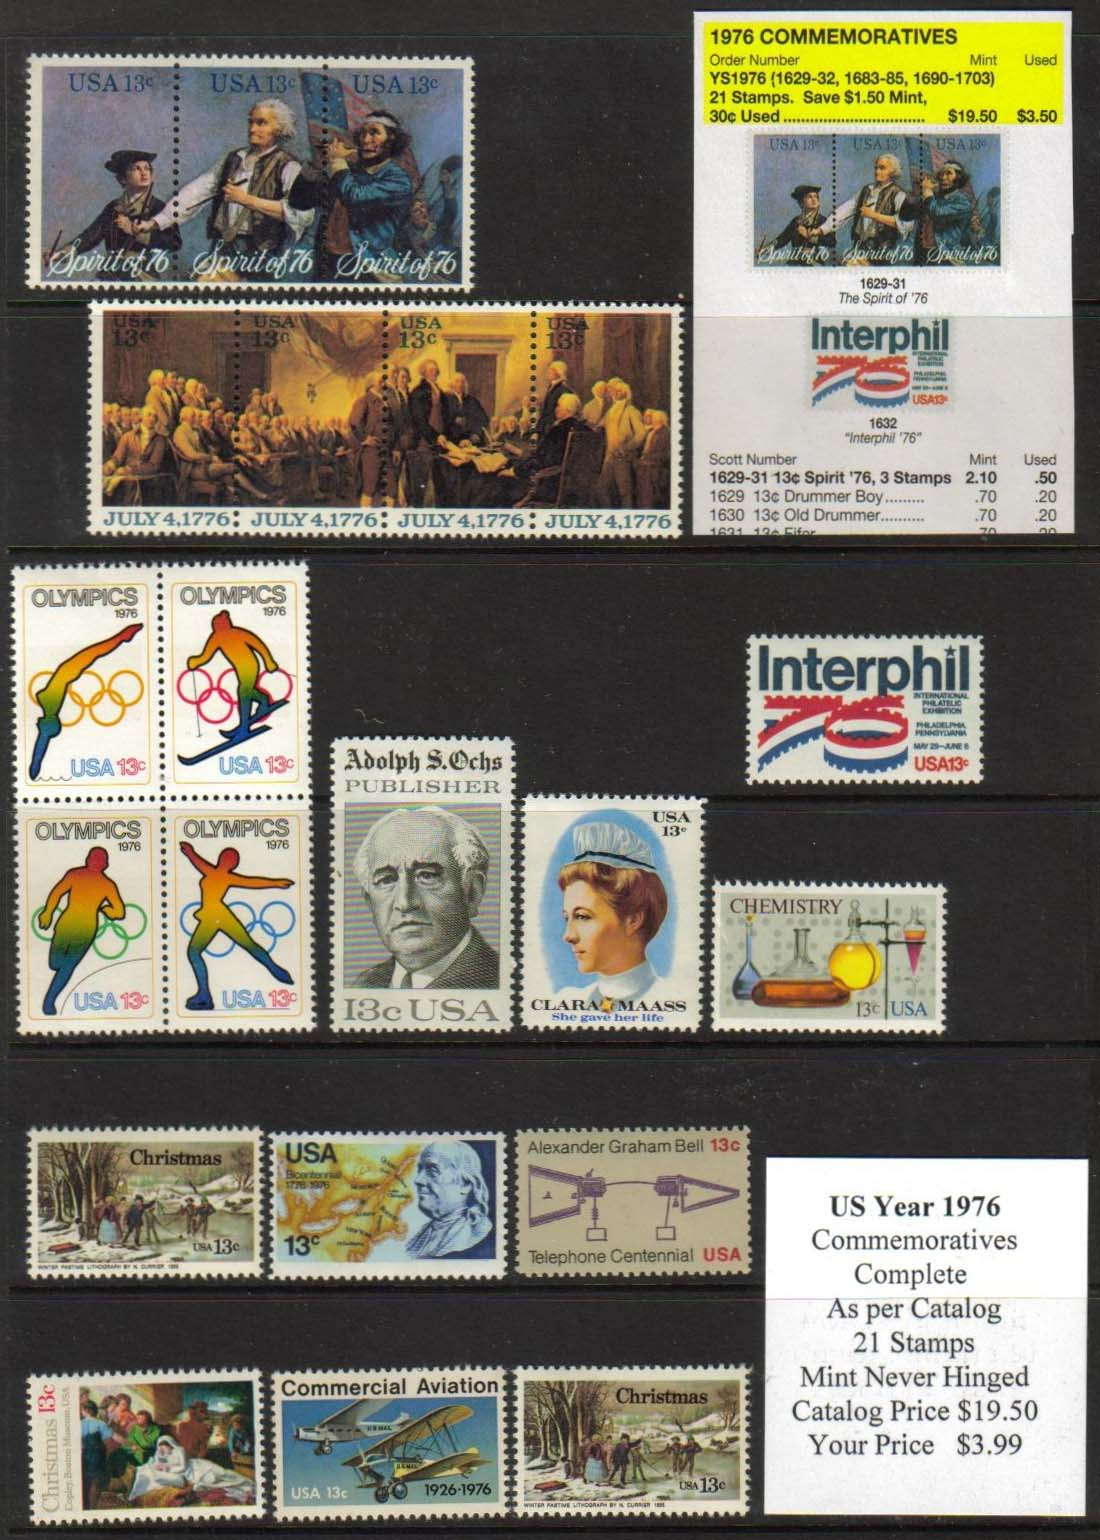 1976 COMMEMORATIVES, 21 STAMPS